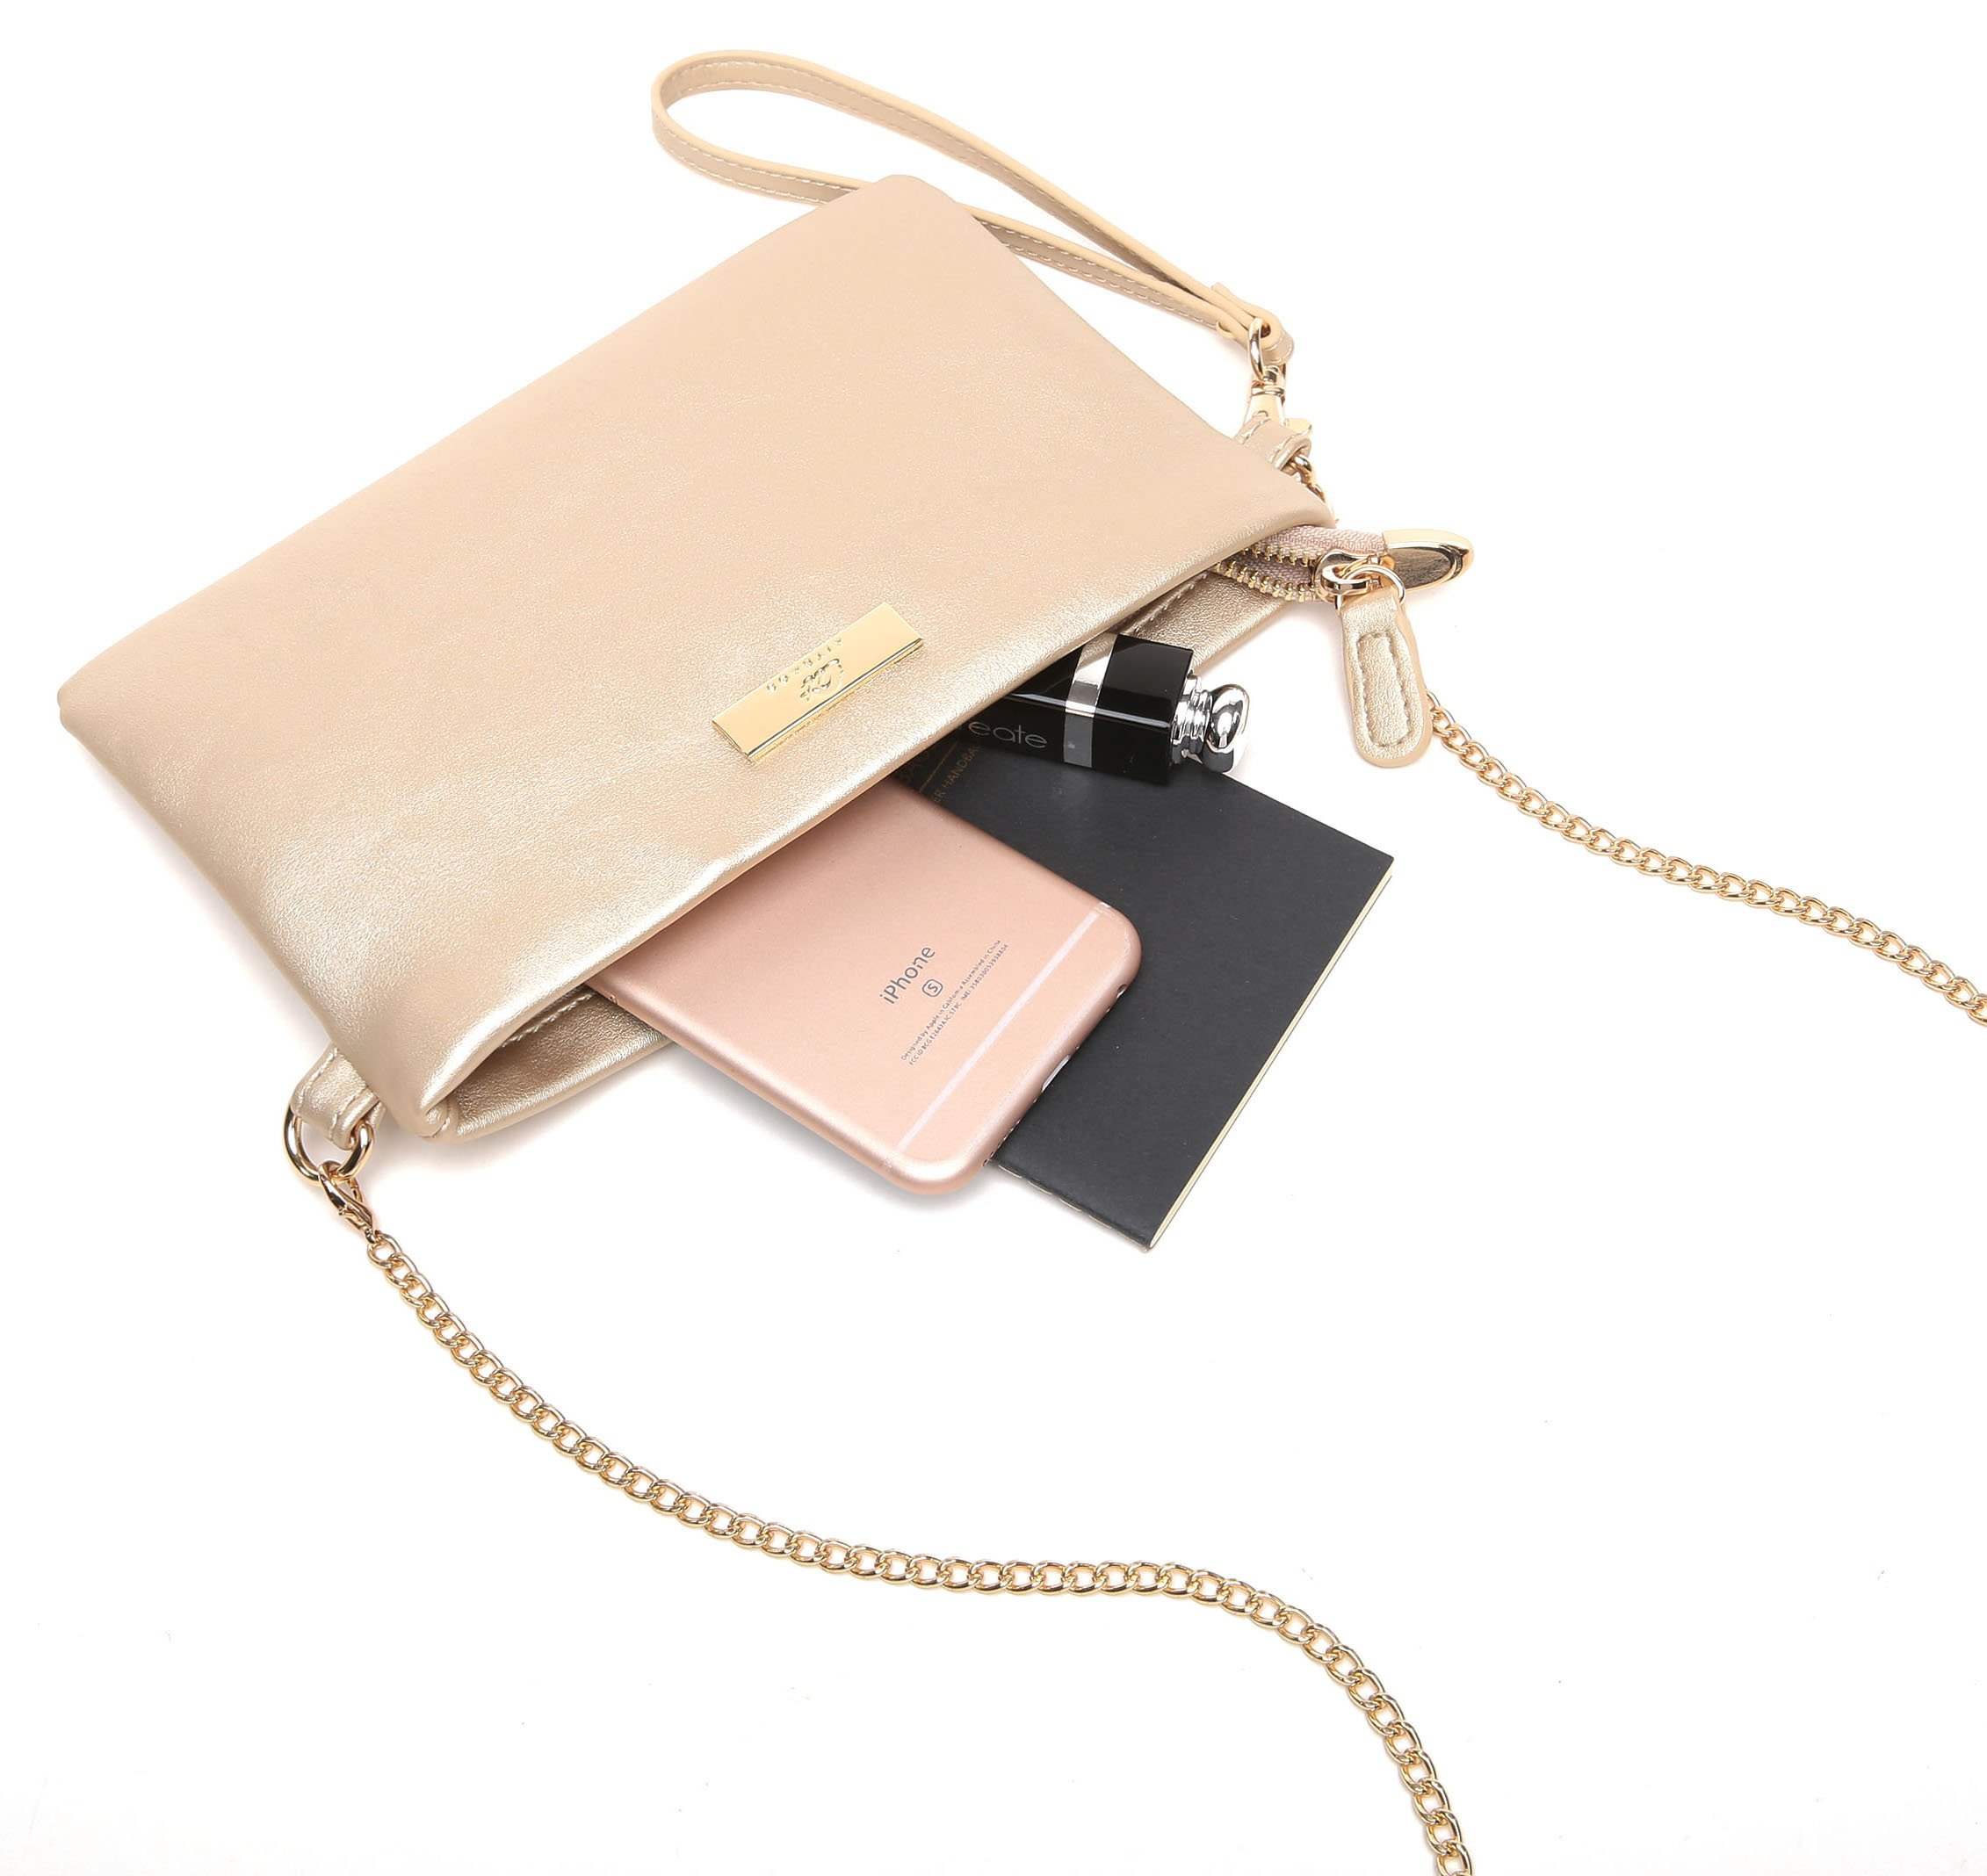 Aitbags Soft PU Leather Wristlet Clutch Crossbody Bag with Chain Strap Cell Phone Purse by Aitbags (Image #2)